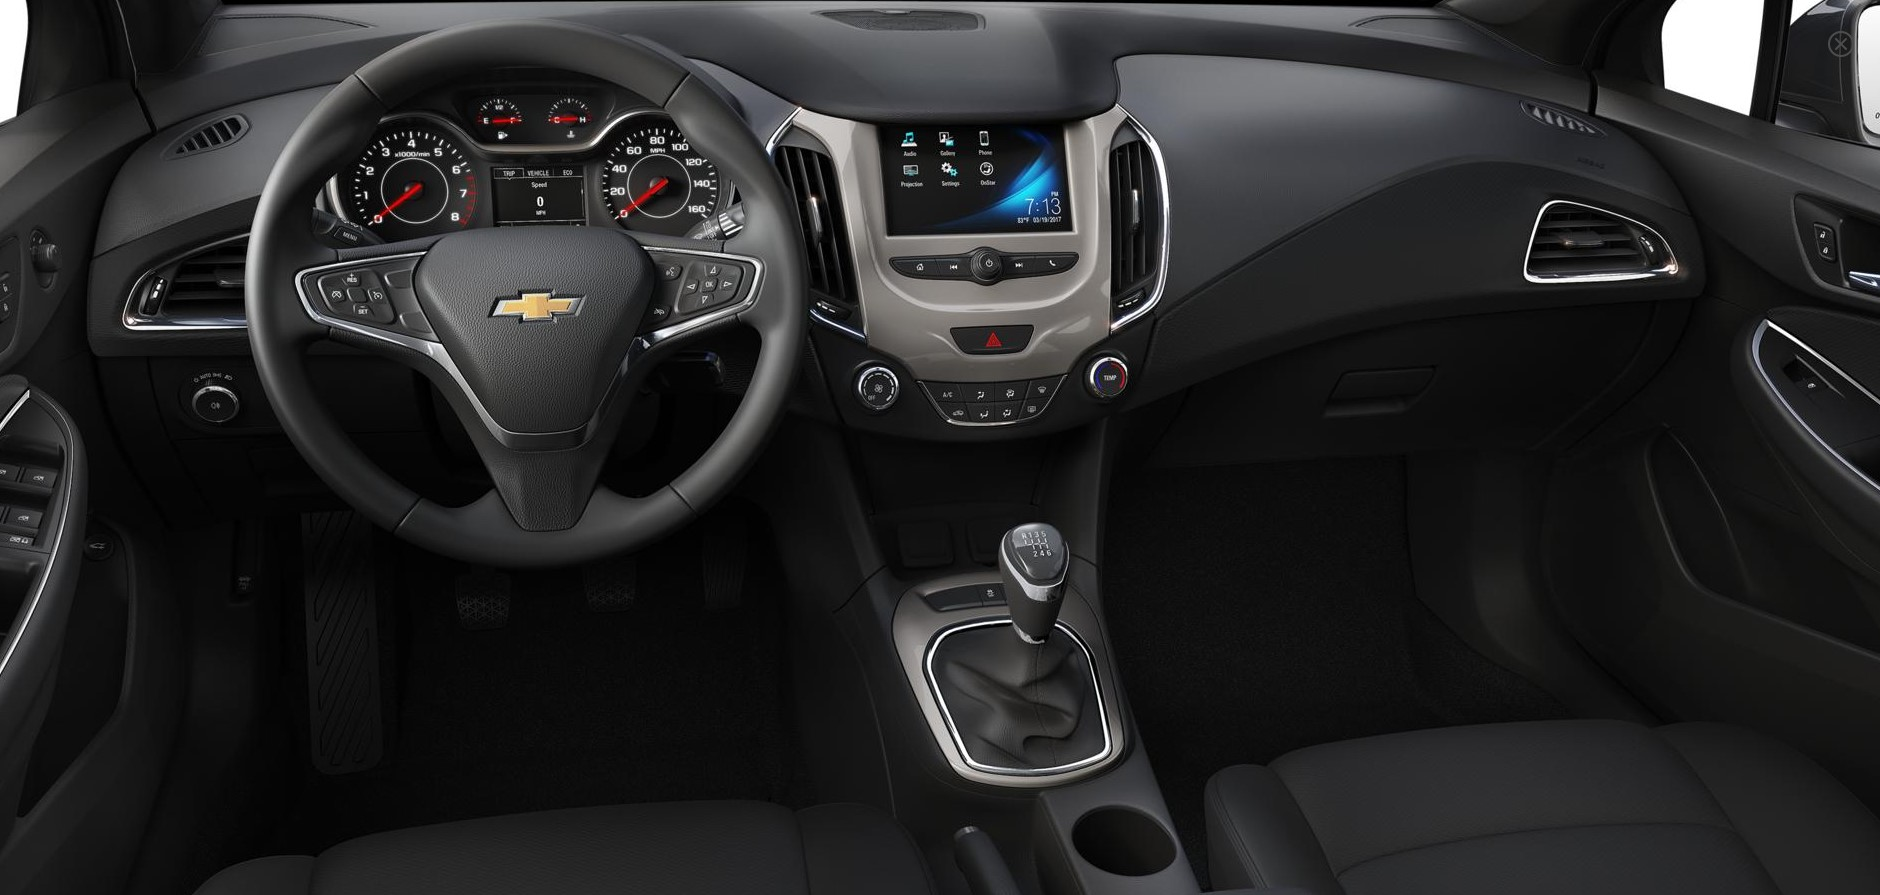 Chevrolet Cruze Infotainment System: If the System Needs Service